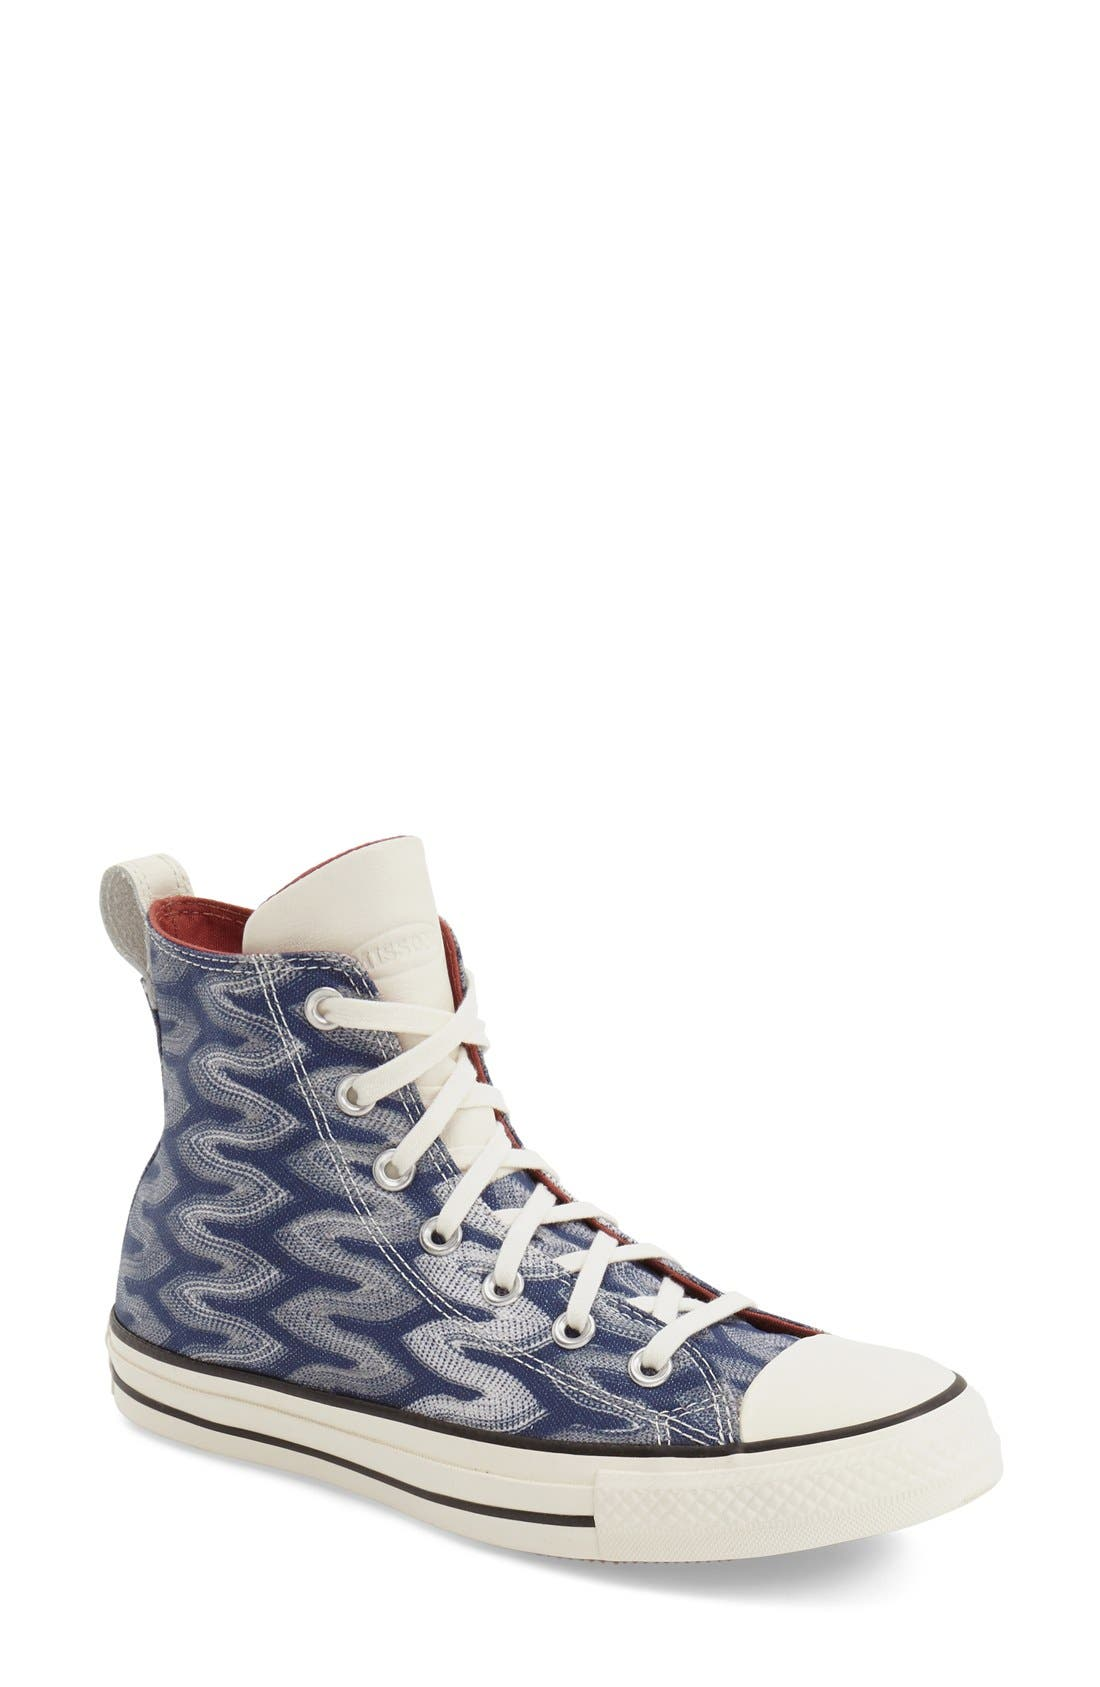 Alternate Image 1 Selected - Converse x Missoni Chuck Taylor® All Star® 'Flame' High Top Sneaker (Women)